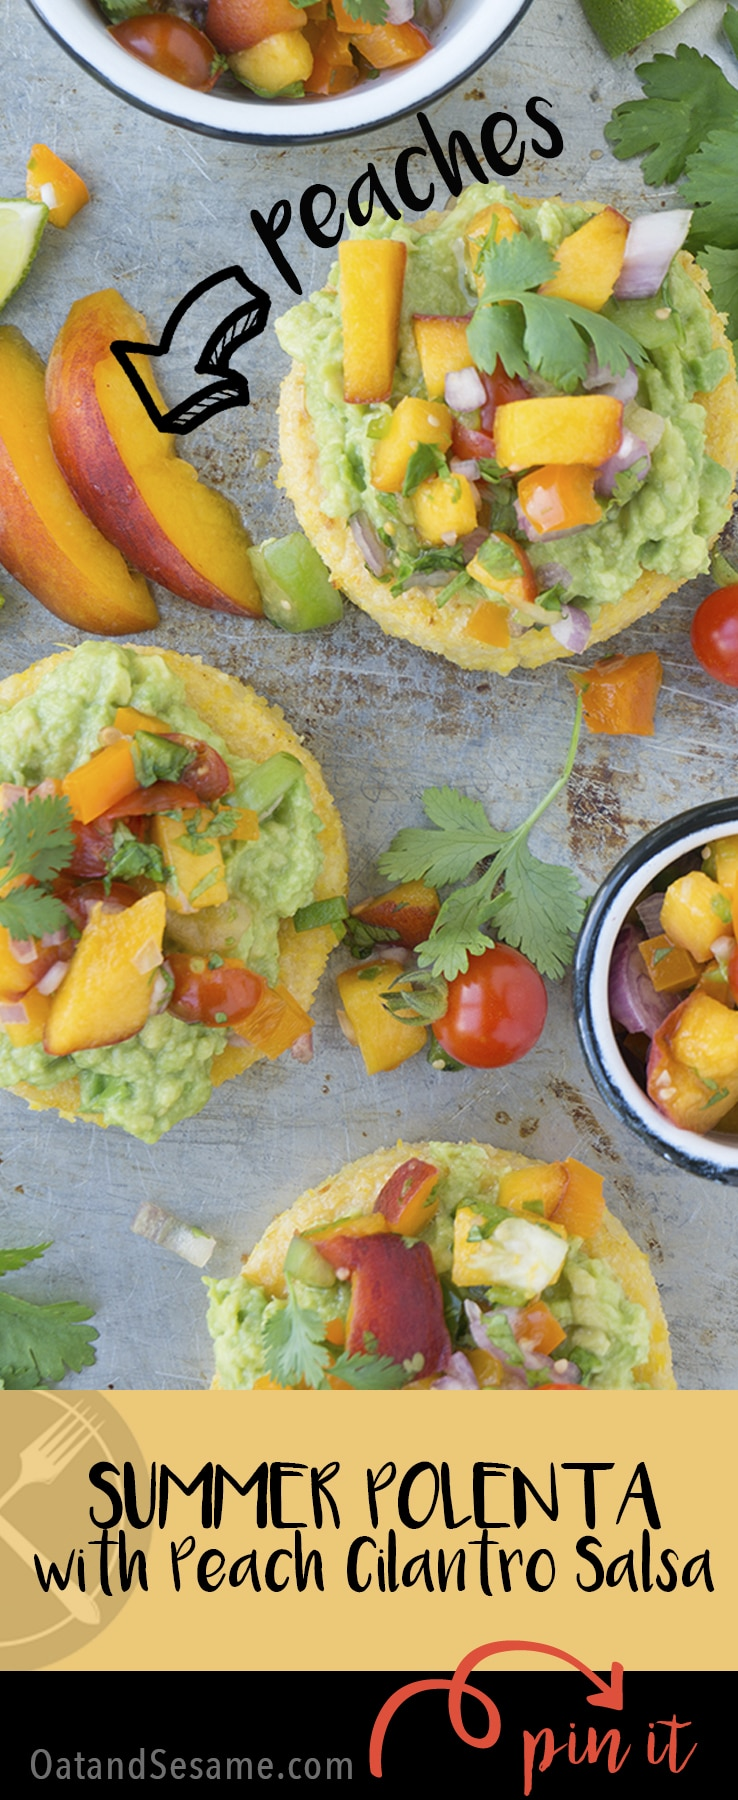 Peach Cilantro Salsa on polenta cakes